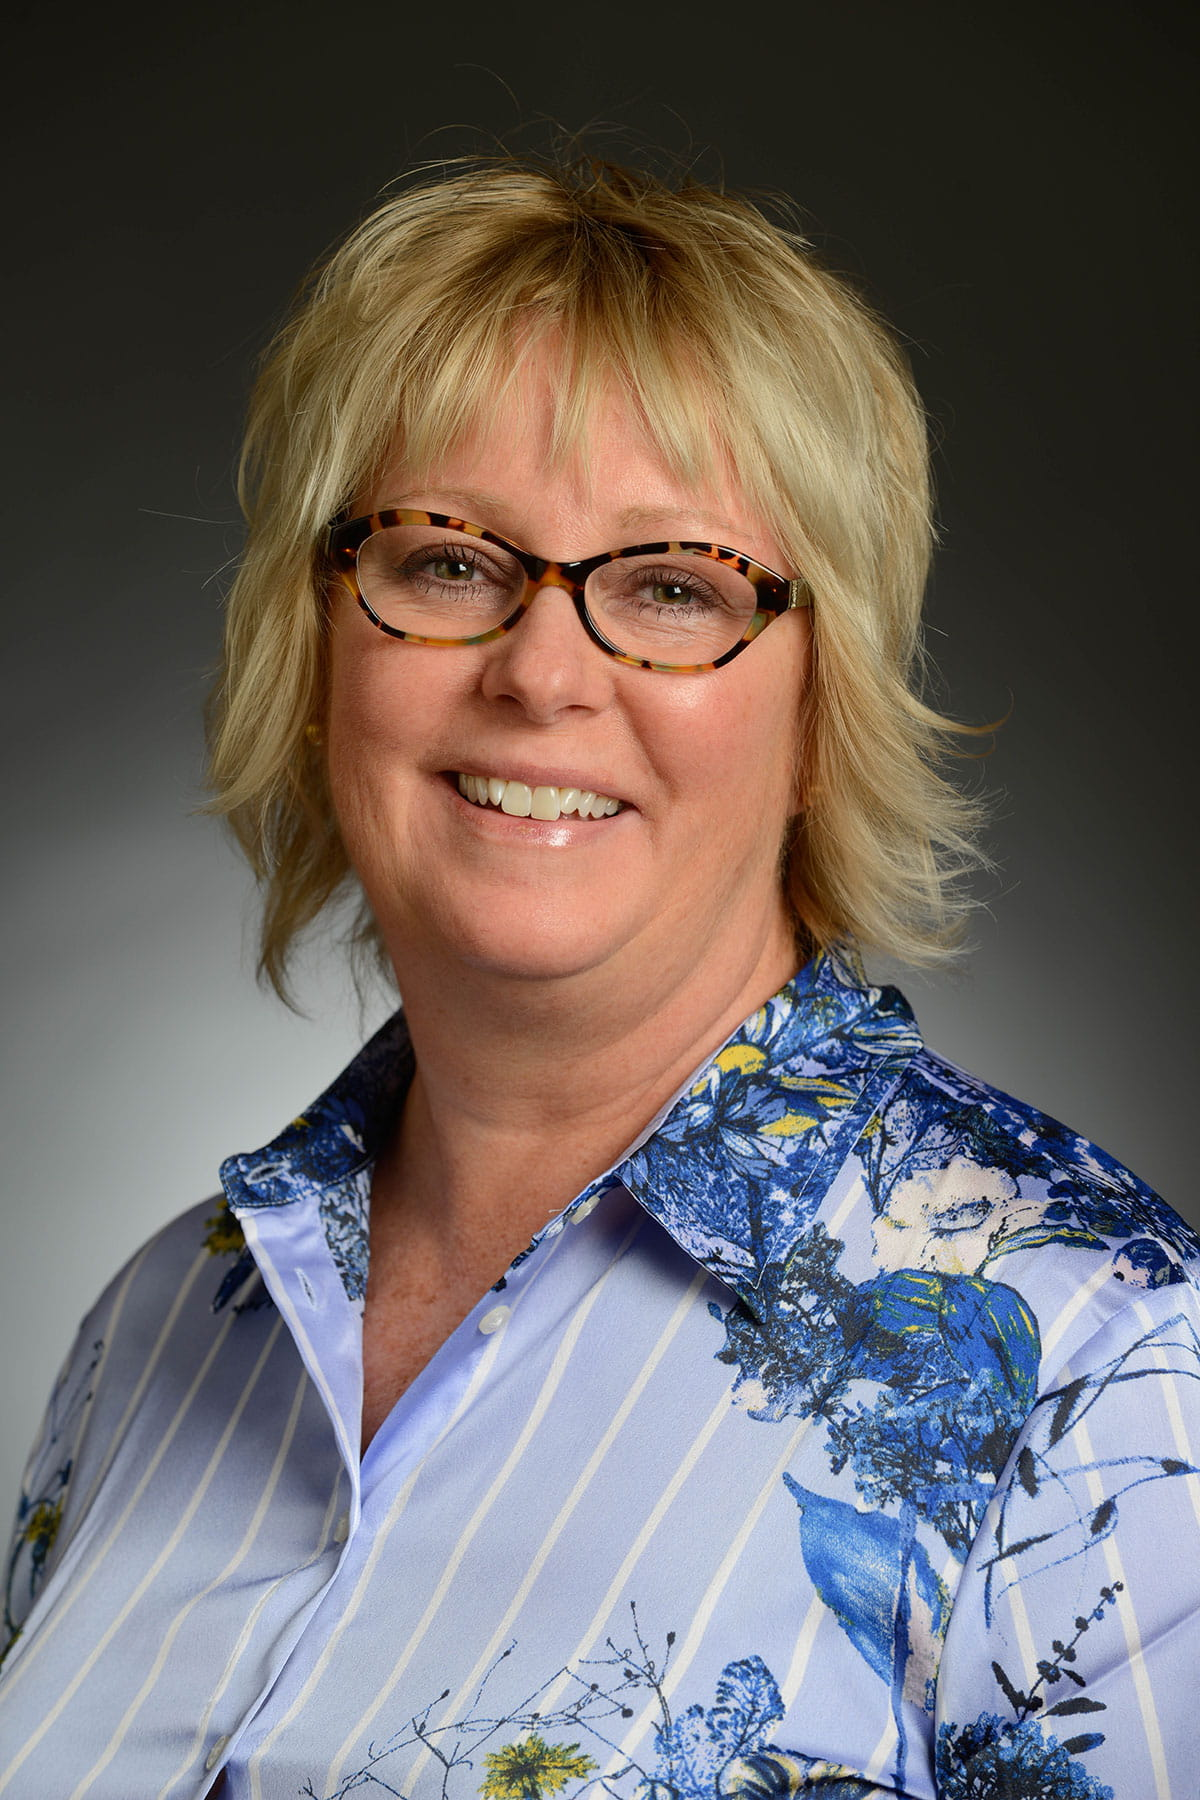 Kimberly (Kim) Kombrinck, APRN, PC/AC